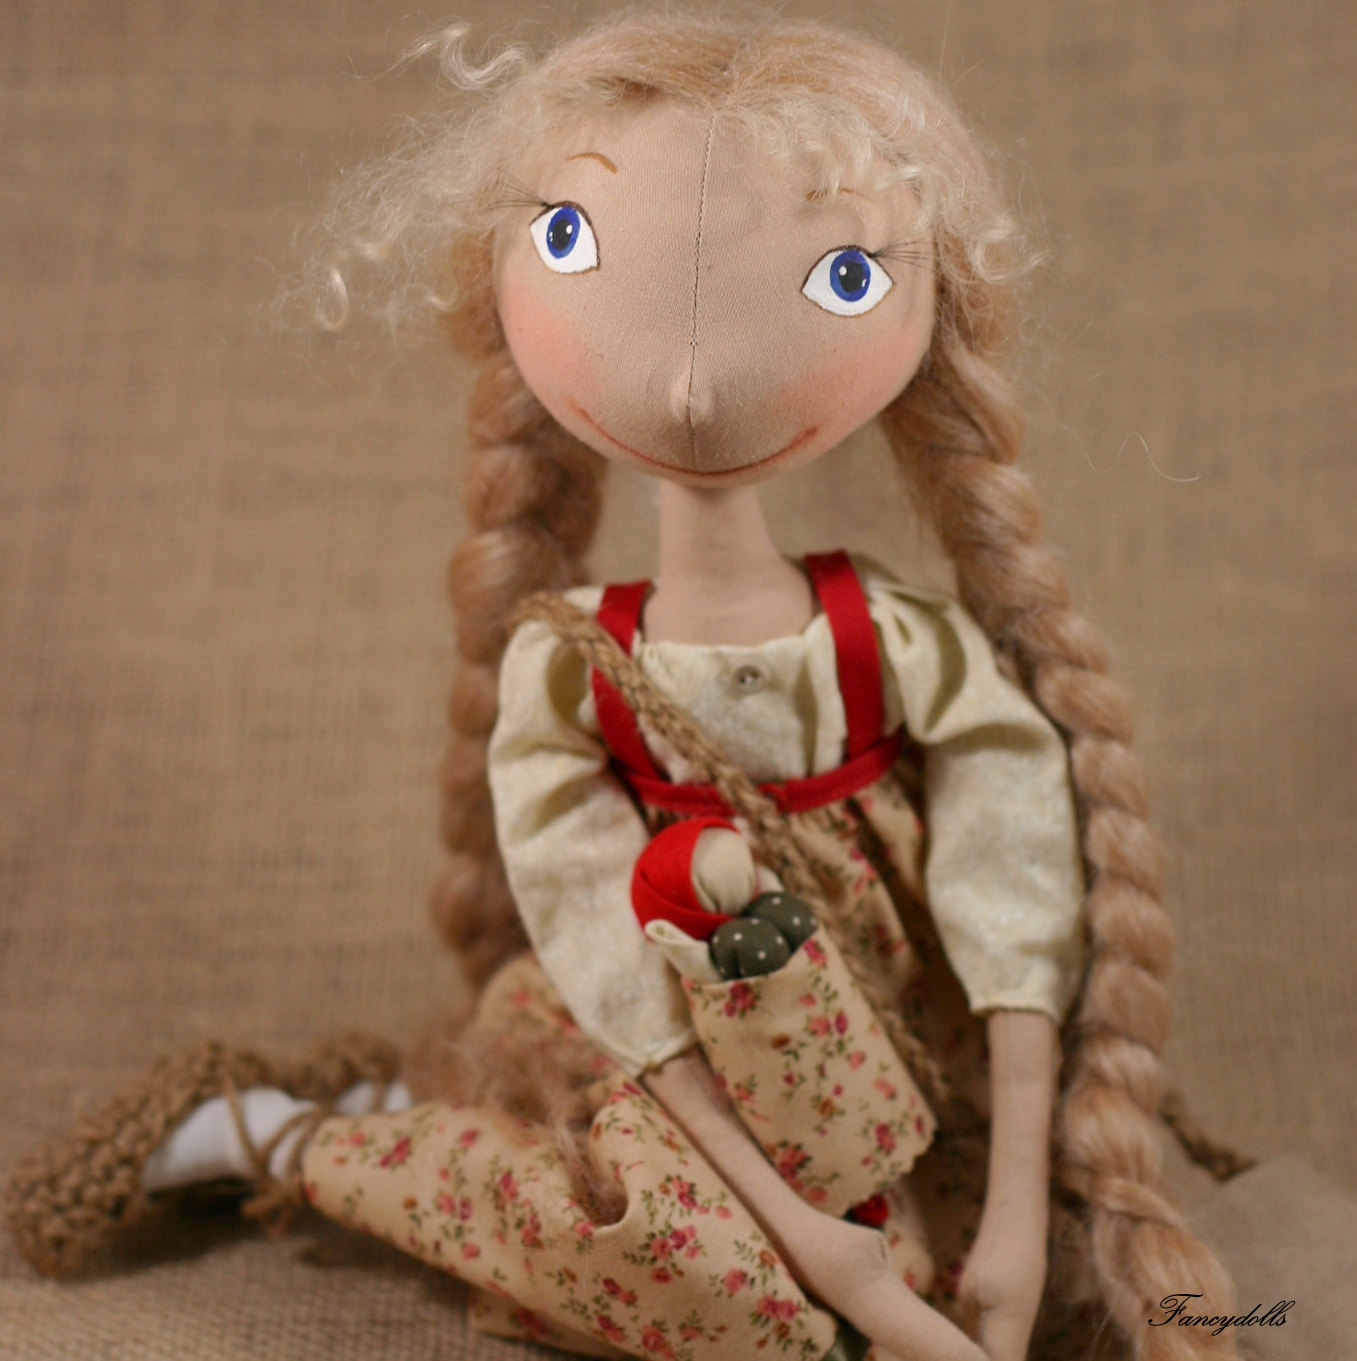 Cloth doll vasilisa from russian fairy tail story made to order on